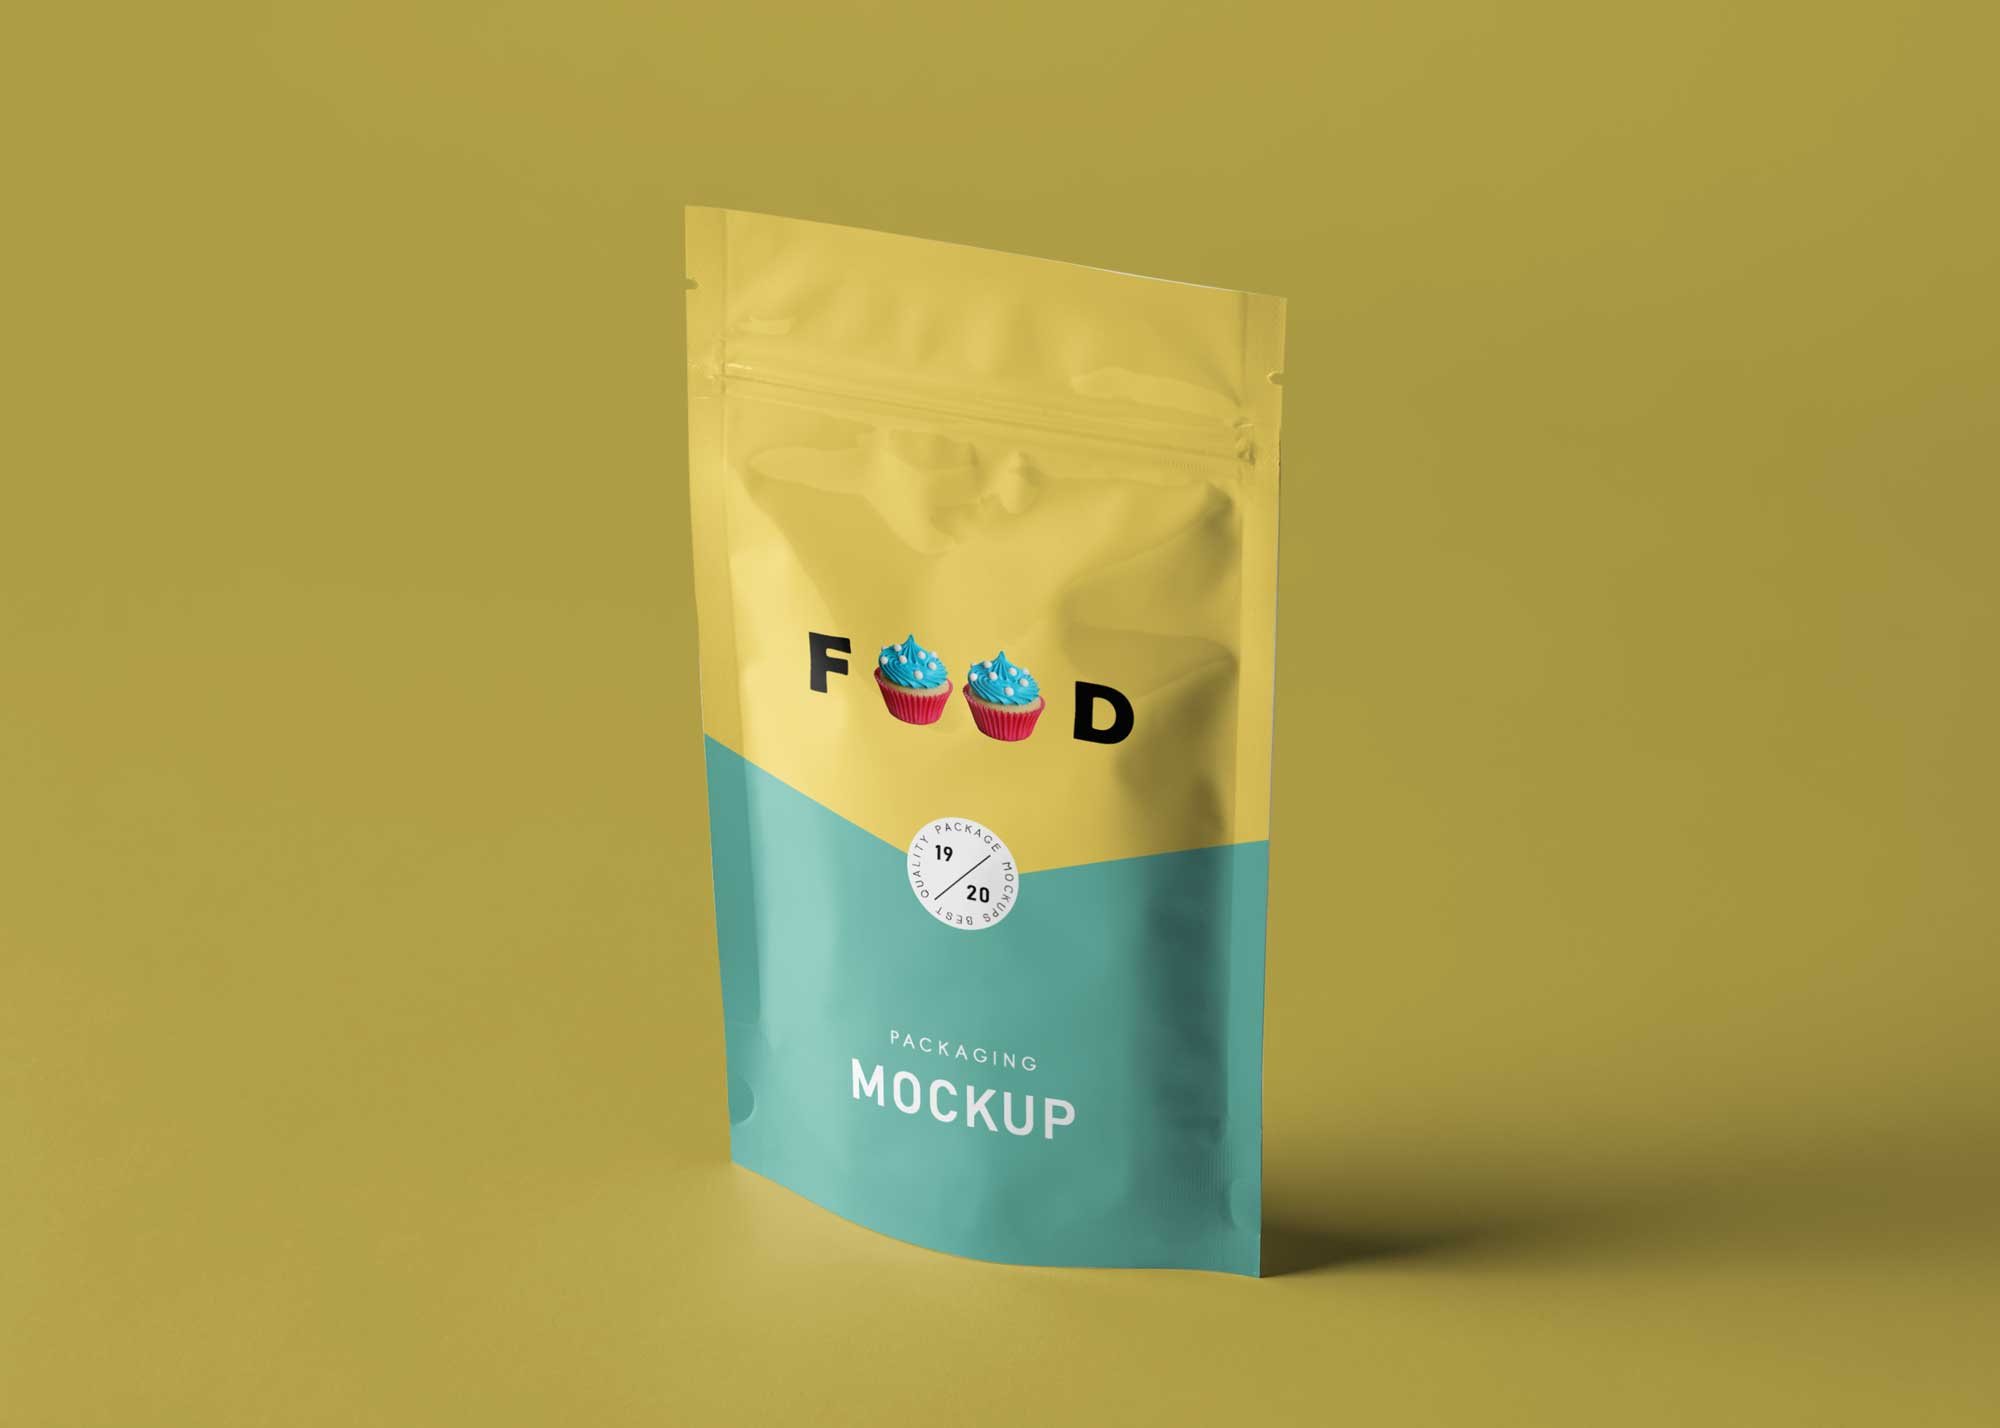 Food paper bag mockup template set. Plastic Food Containers Mockup Free Vol 1 Clear Plastic Food Containers Packaging Mock Up Blank Plastic Disposable Food Container Mockup Transparent Lid Isolated Clipping Path 3d Illustration Free Logo Mockups Psd Download